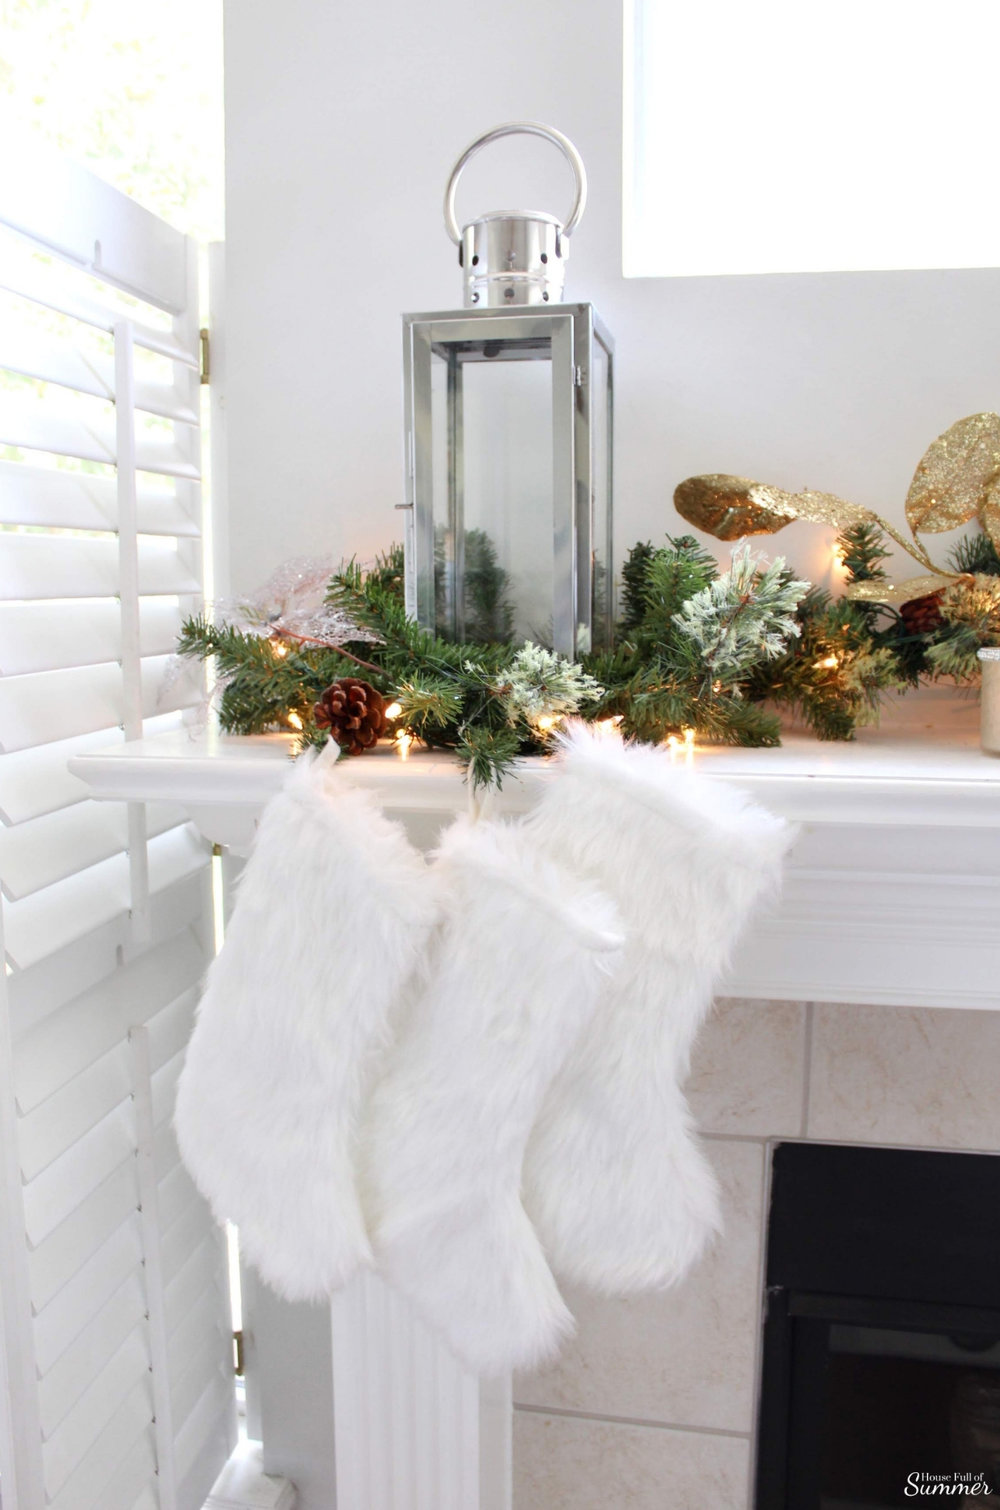 A Charming Southern Christmas Home Tour {Part 2} | House Full of Summer - Master Bedroom Christmas decor ideas, navy Christmas decorations, blue and white holiday decor, foyer, Gold Magnolias and Southern influences in Christmas decor, neutral Christmas decorating, foyer, living room, Christmas centerpiece, greenery, DIY holiday arrangement, coastal decor, Southern Christmas tree ornament ideas tassel ornaments mantle decor